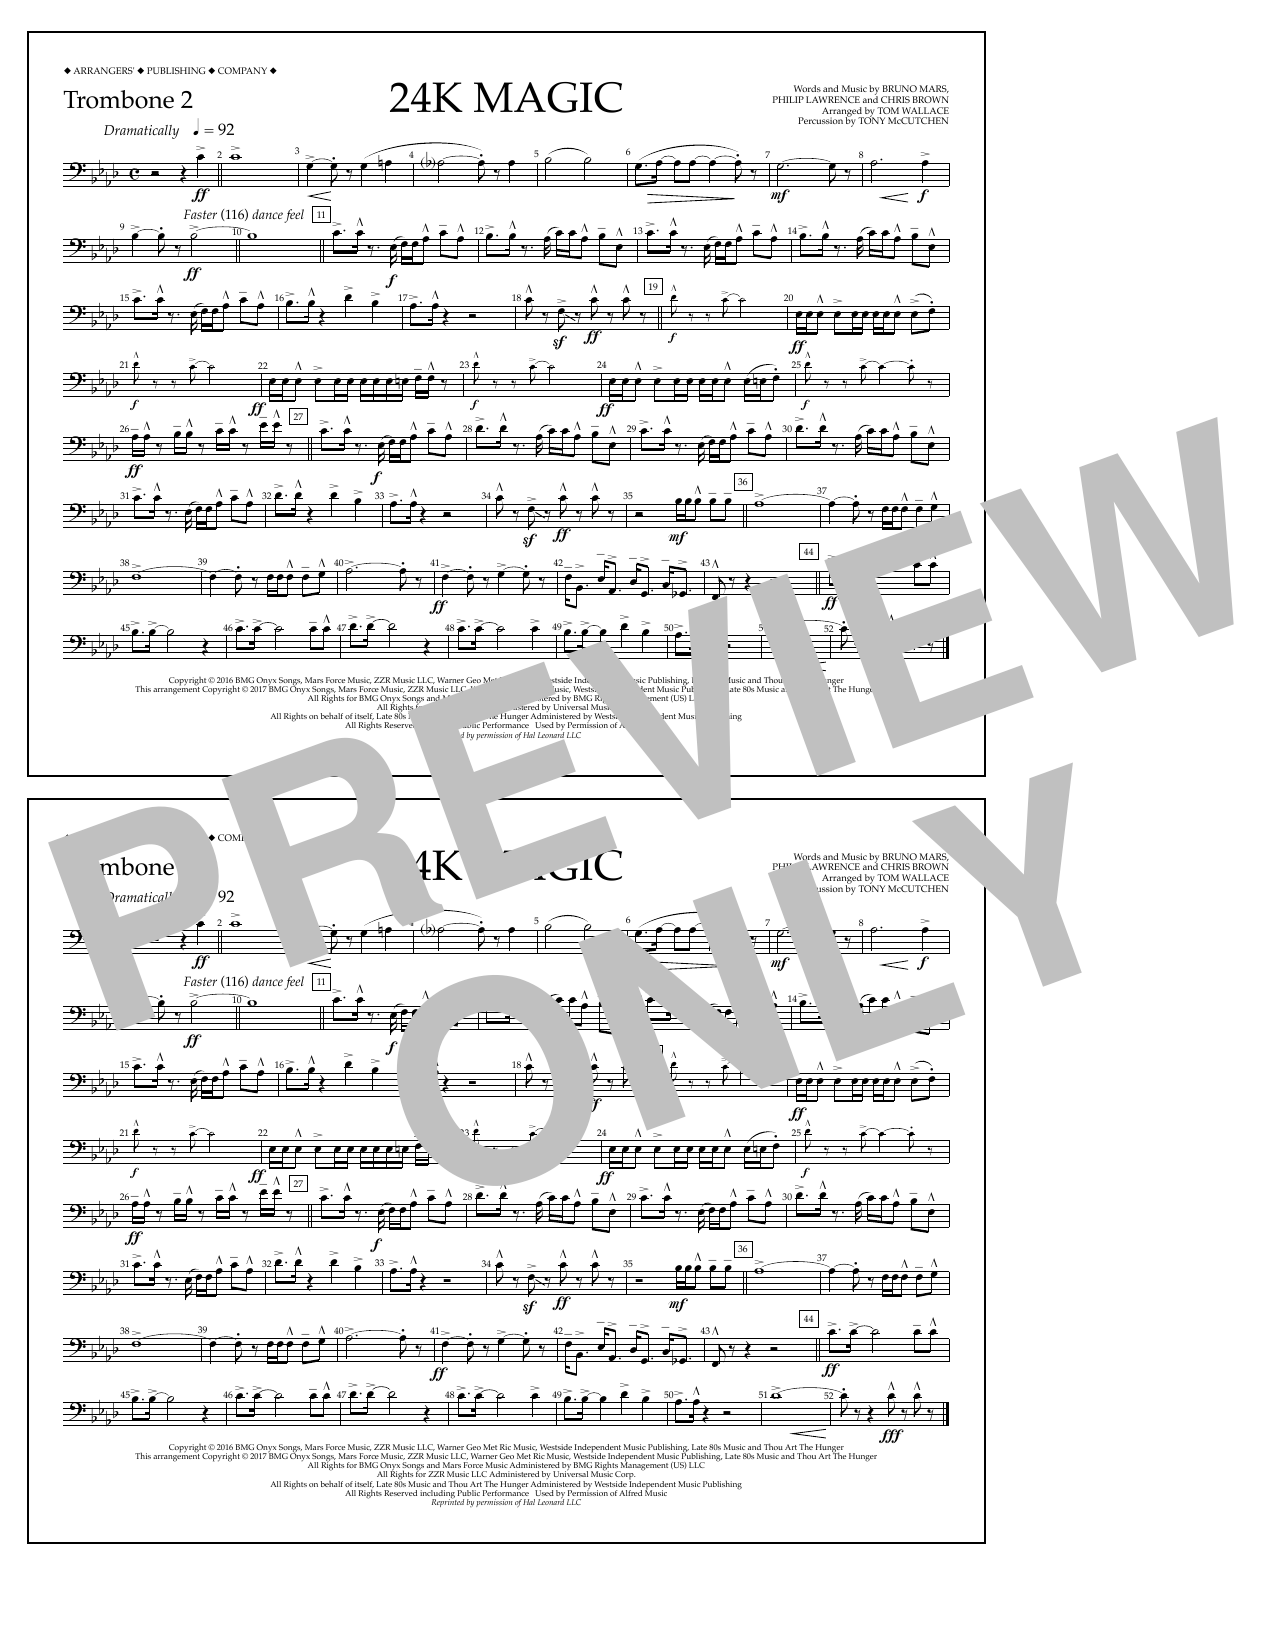 24K Magic - Trombone 2 Sheet Music